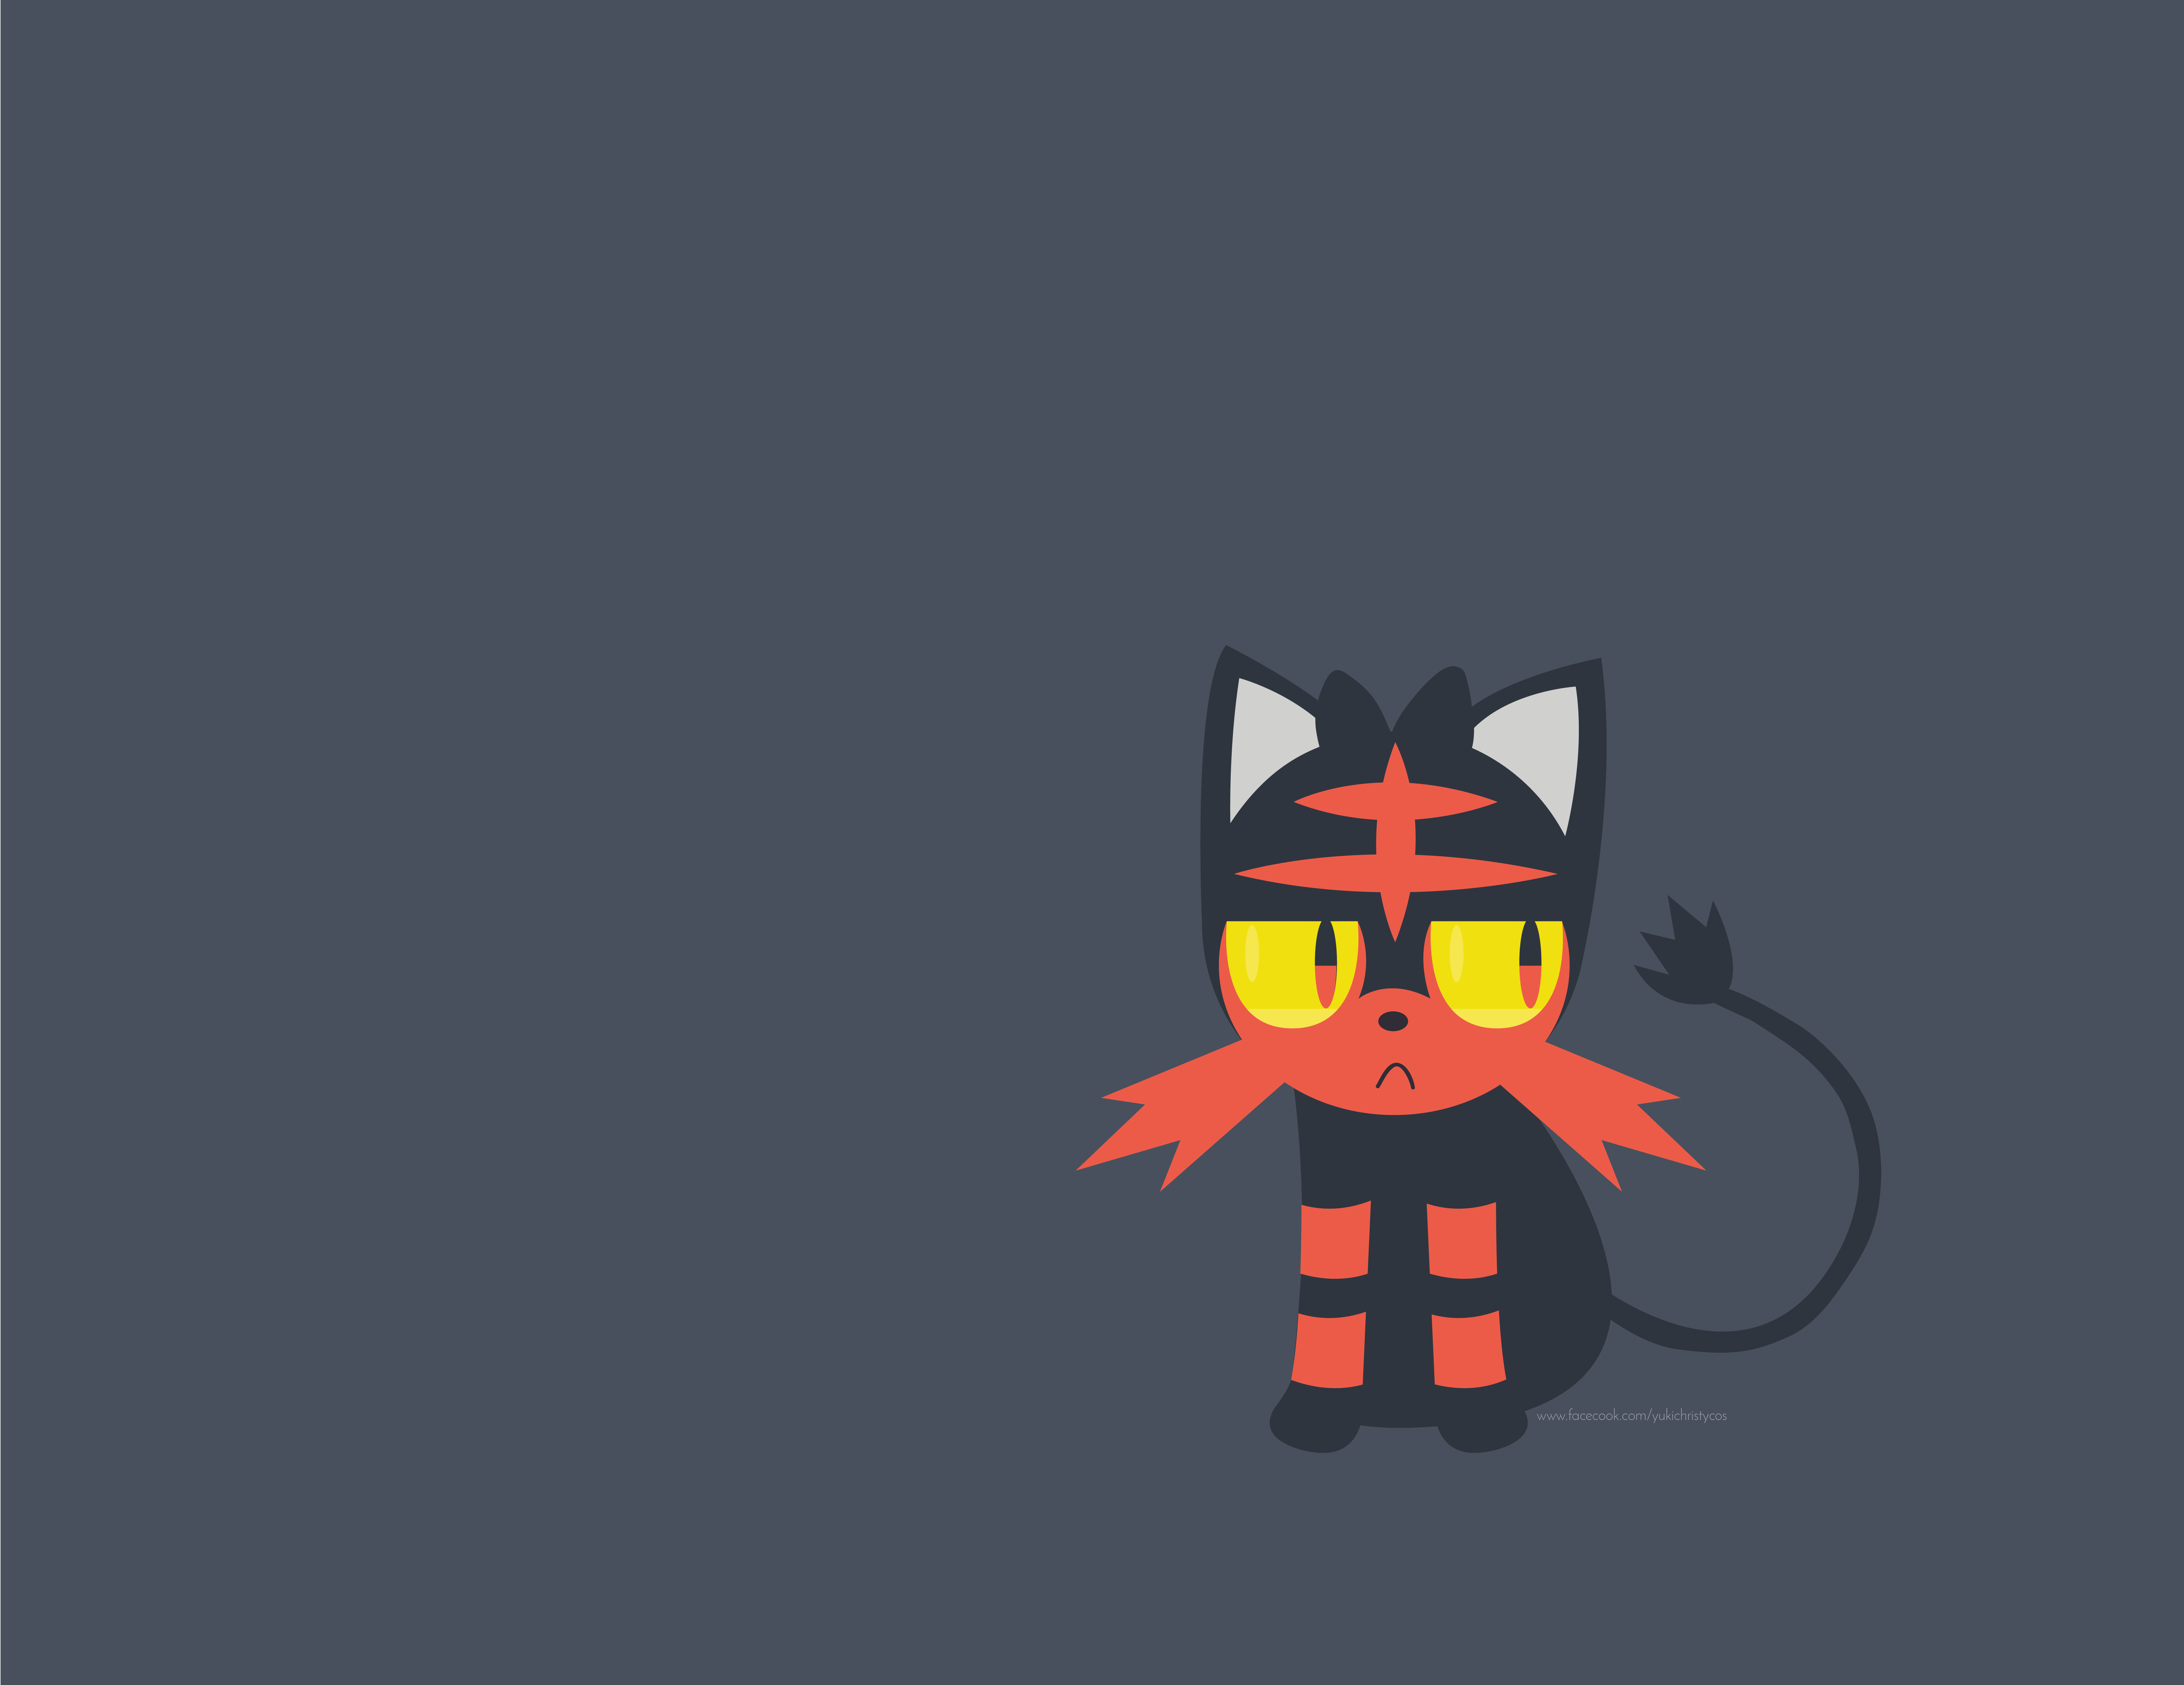 Imagepokemon Sun & Moon - Litten Fondo De Pantalla , HD Wallpaper & Backgrounds